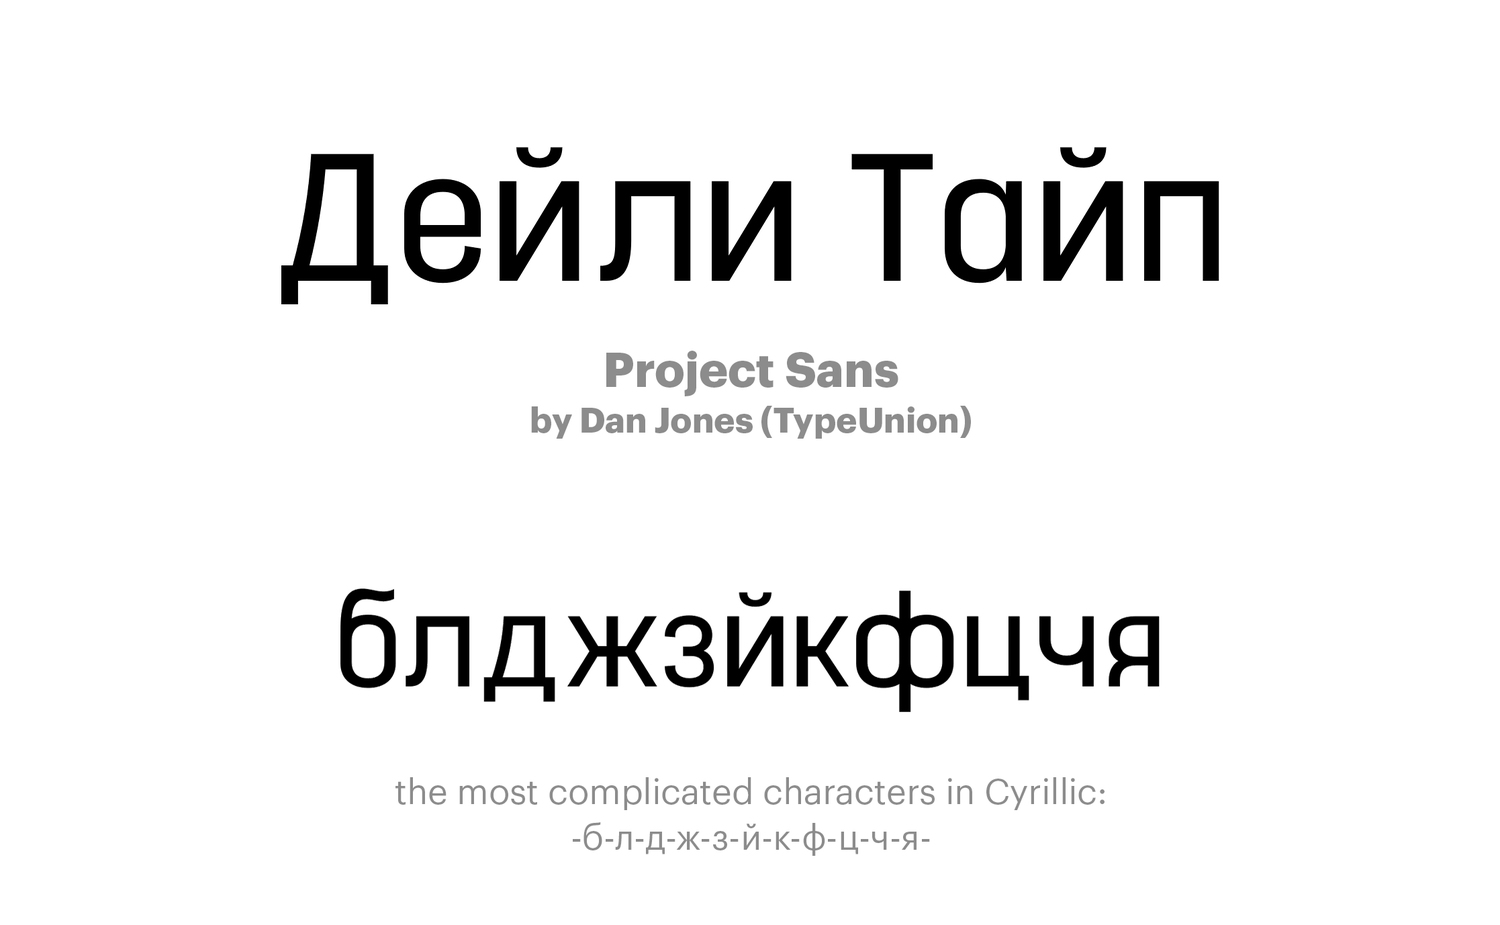 Project-Sans-by-Dan-Jones-(TypeUnion)